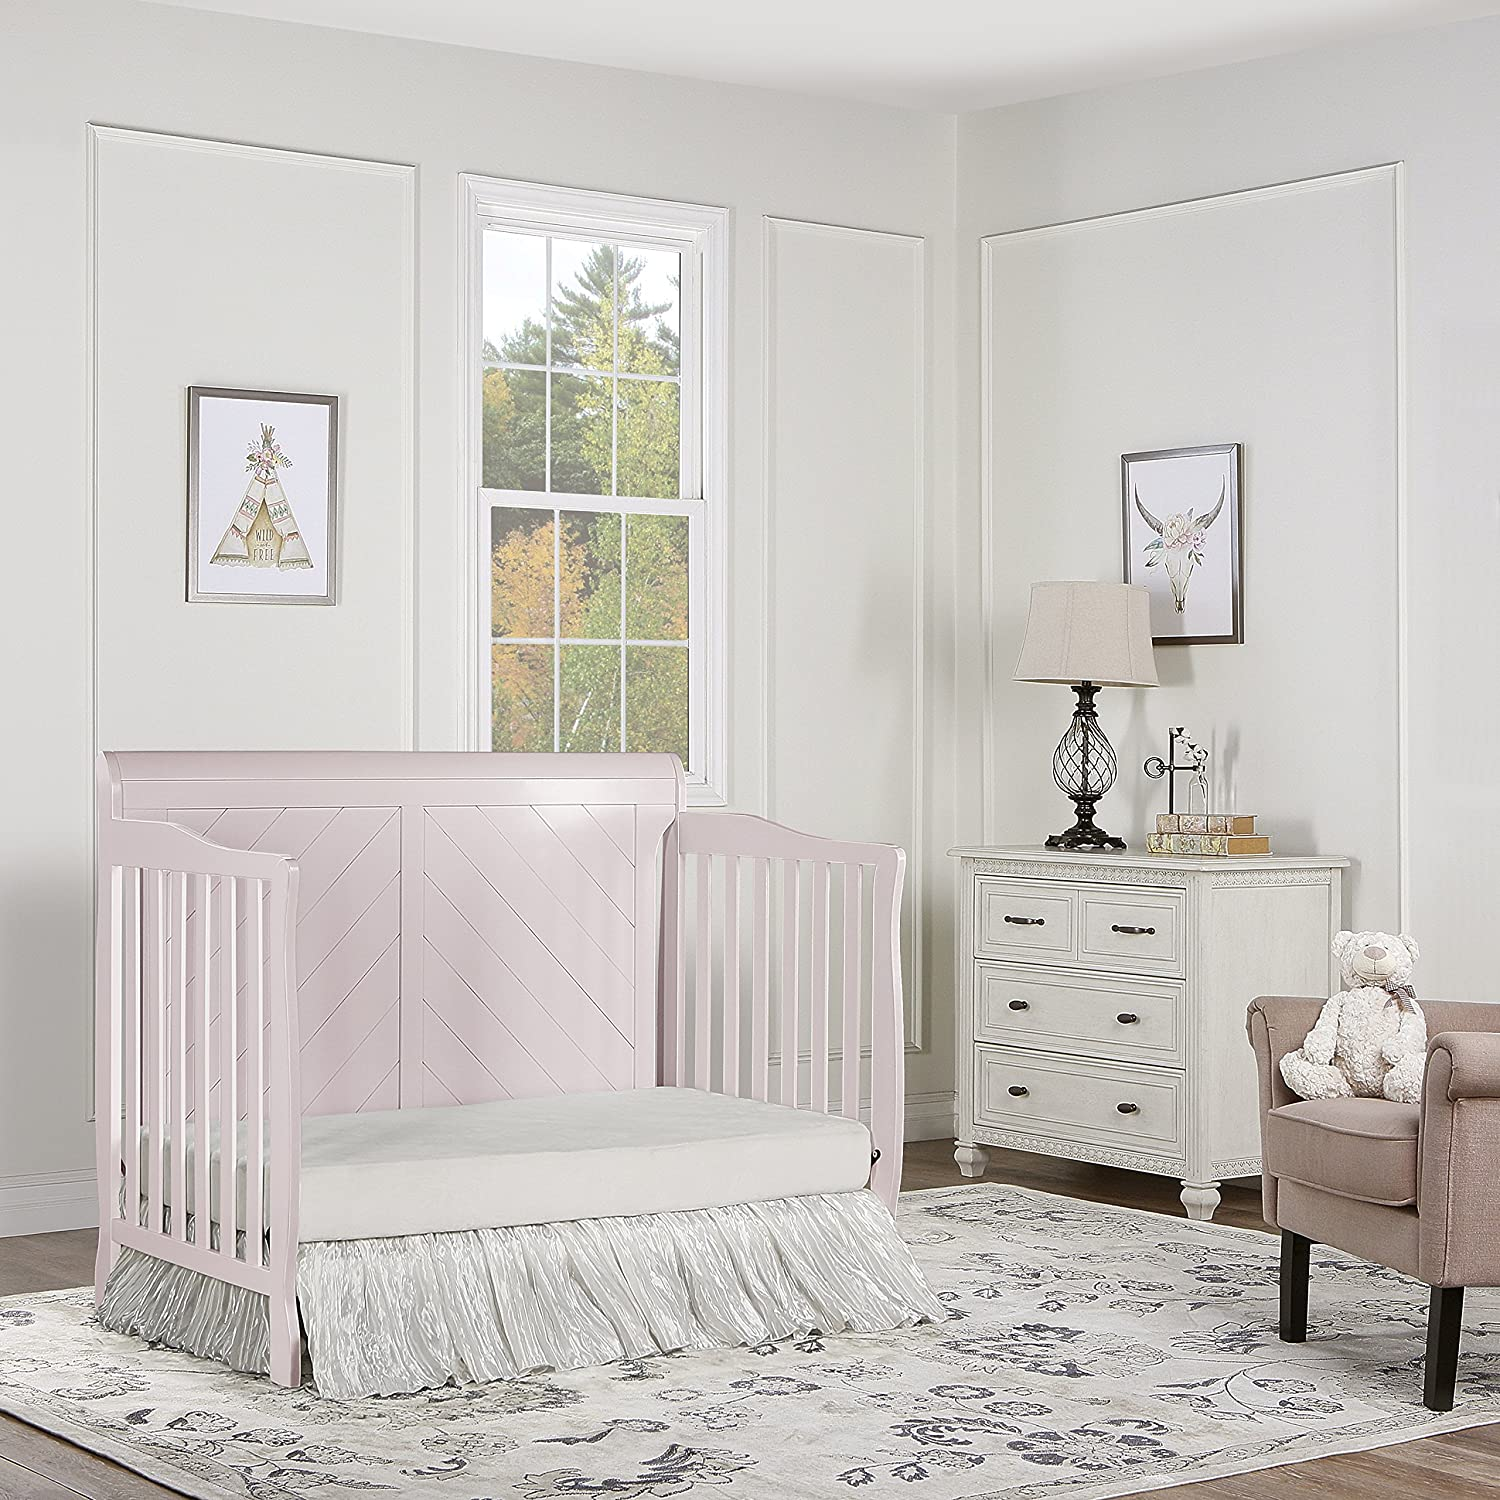 Dream On Me Ashton Full Panel Convertible 5-in-1 Crib, Blush Pink